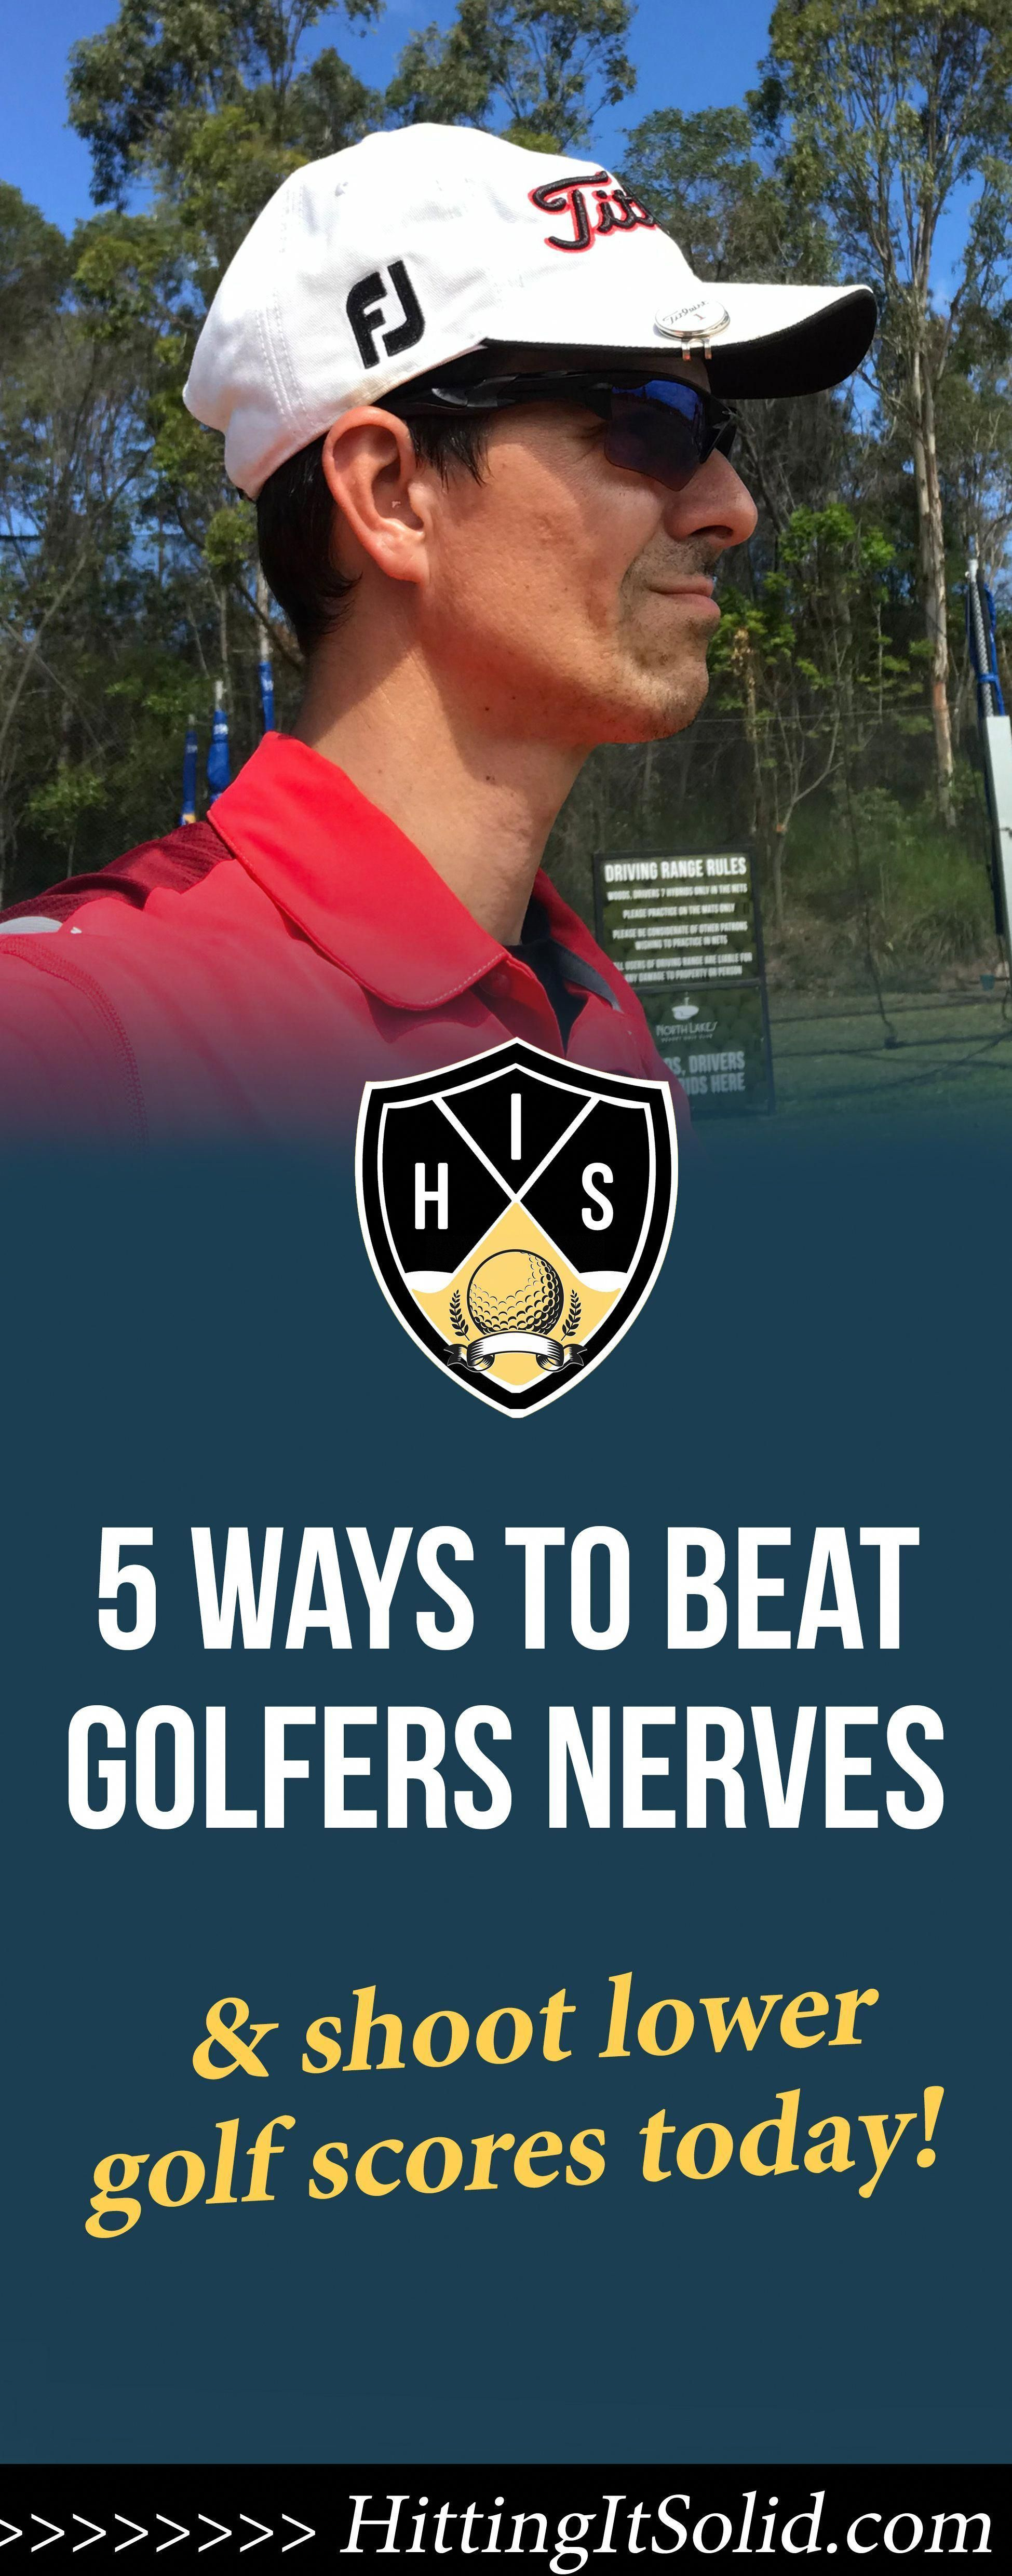 If you want to know the best way how to beat golfers